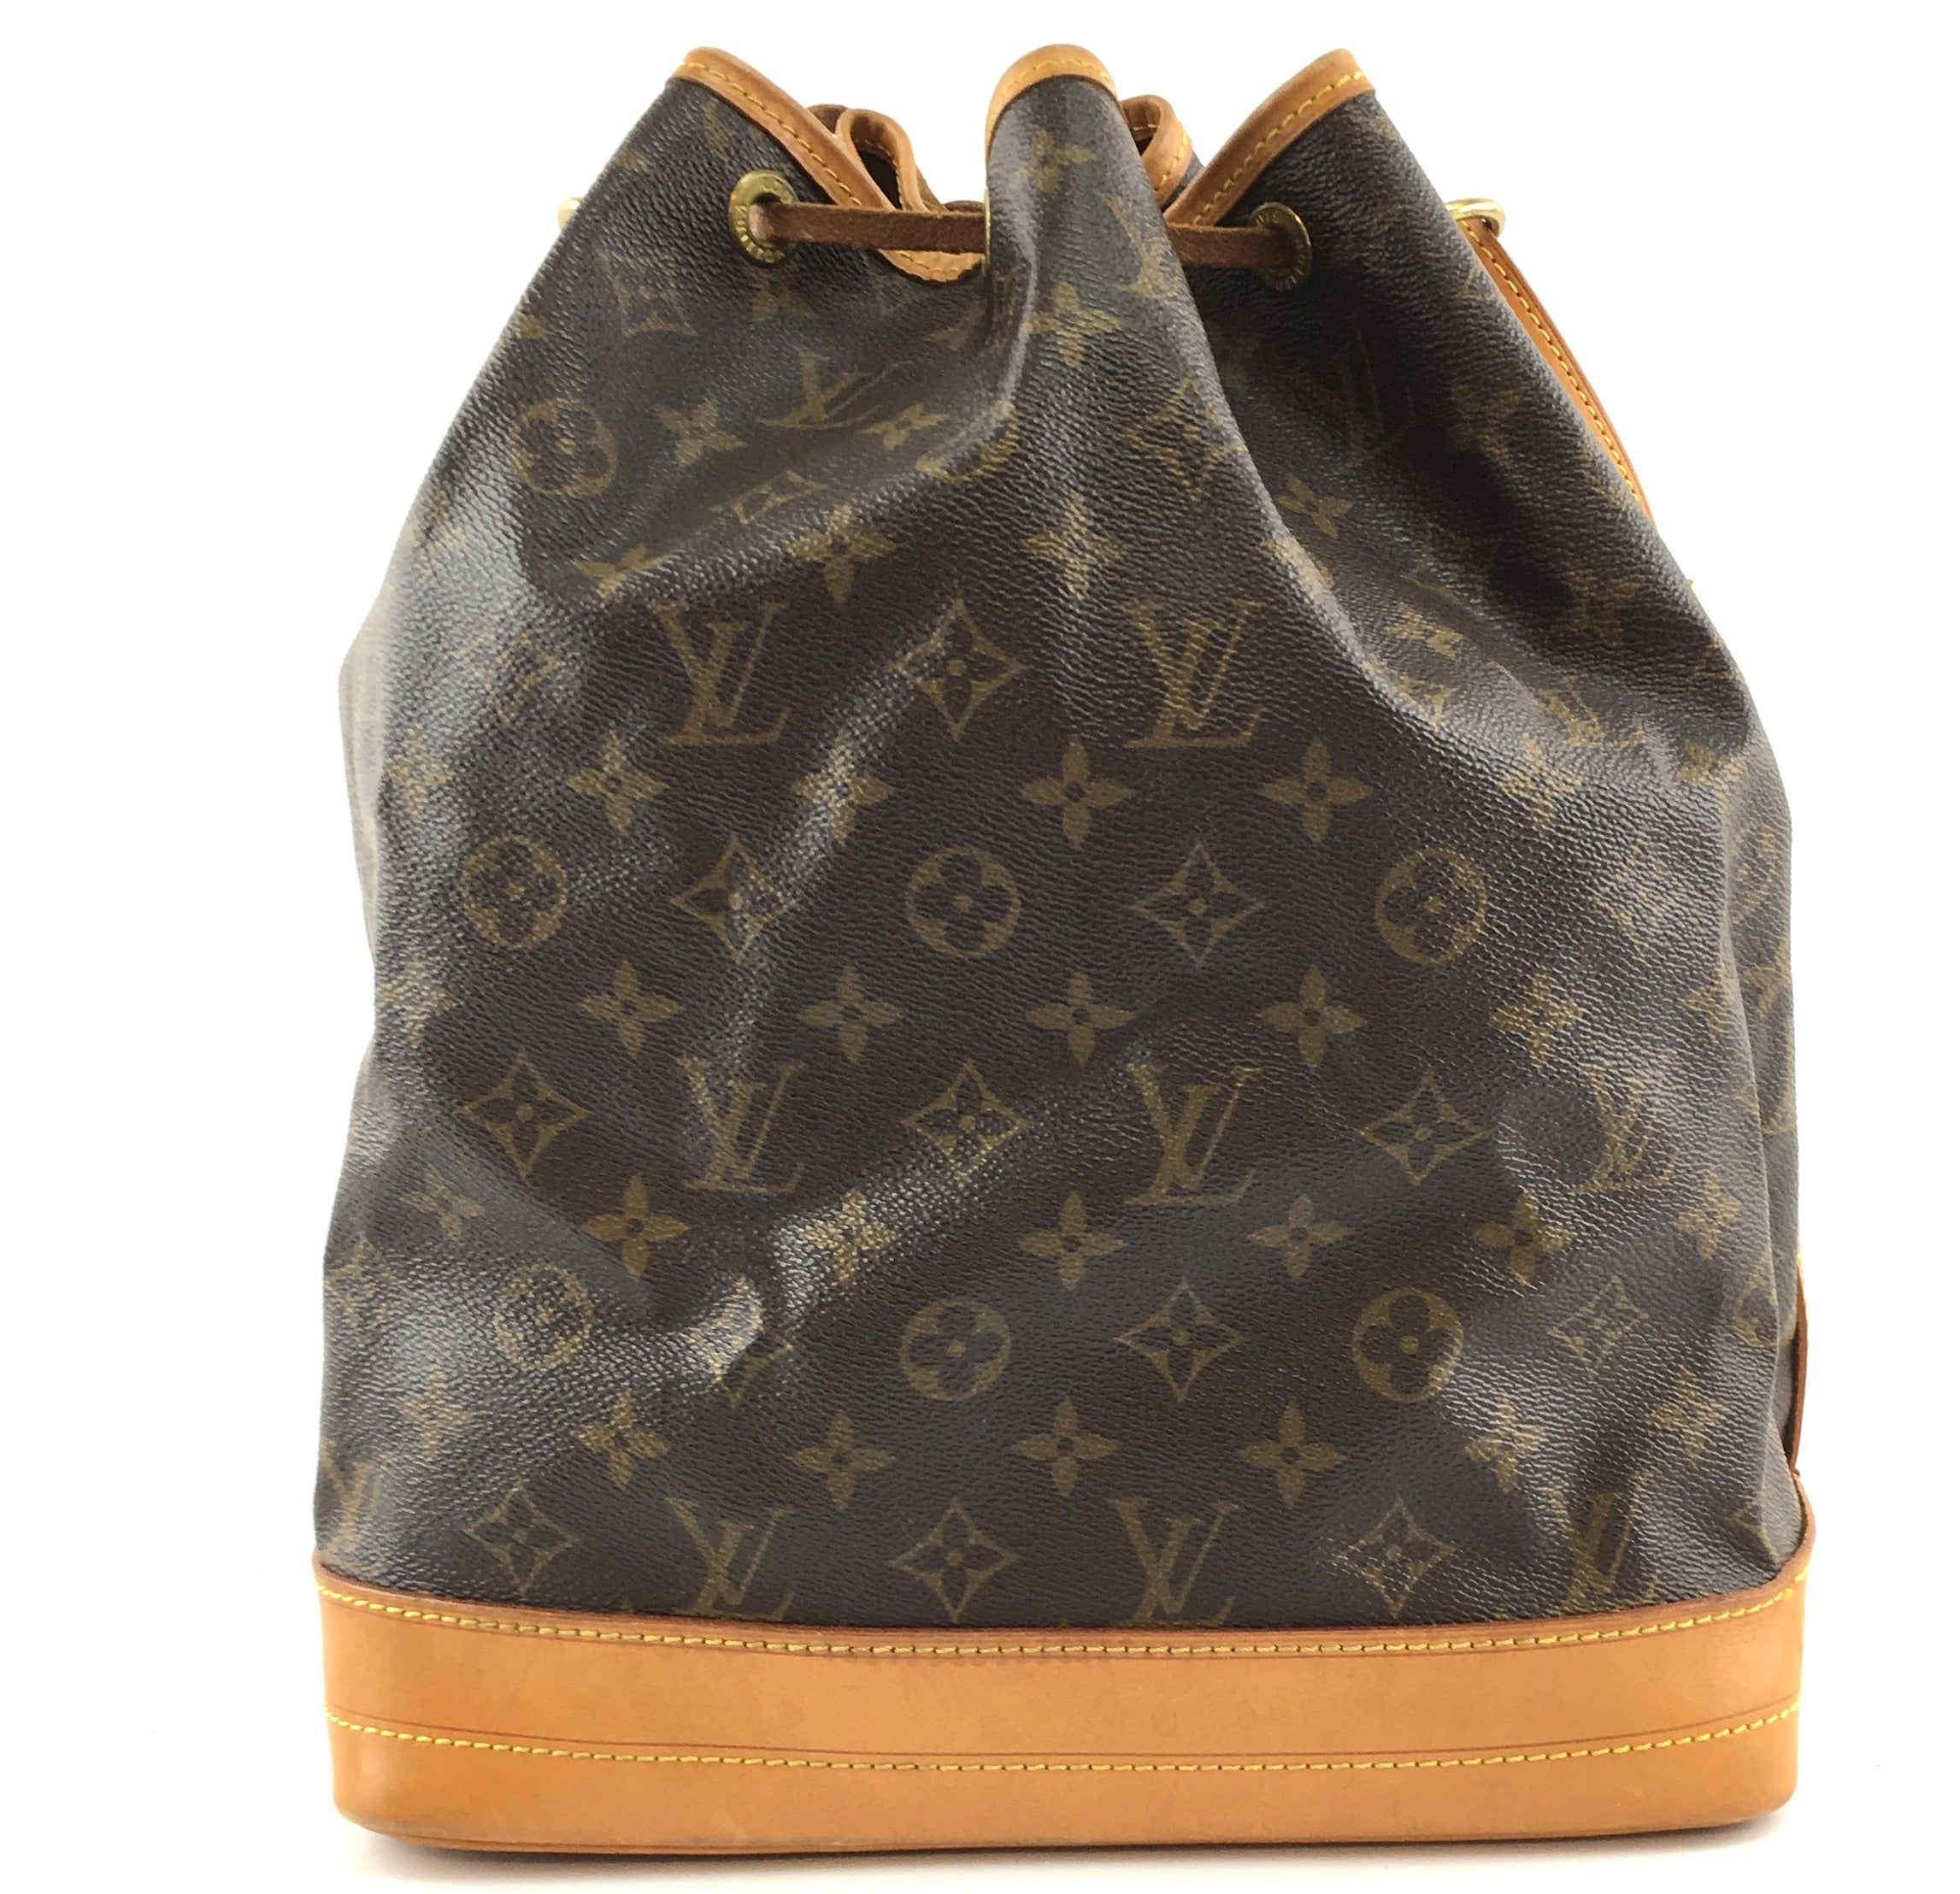 Louis Vuitton Noe GM Monogram Canvas